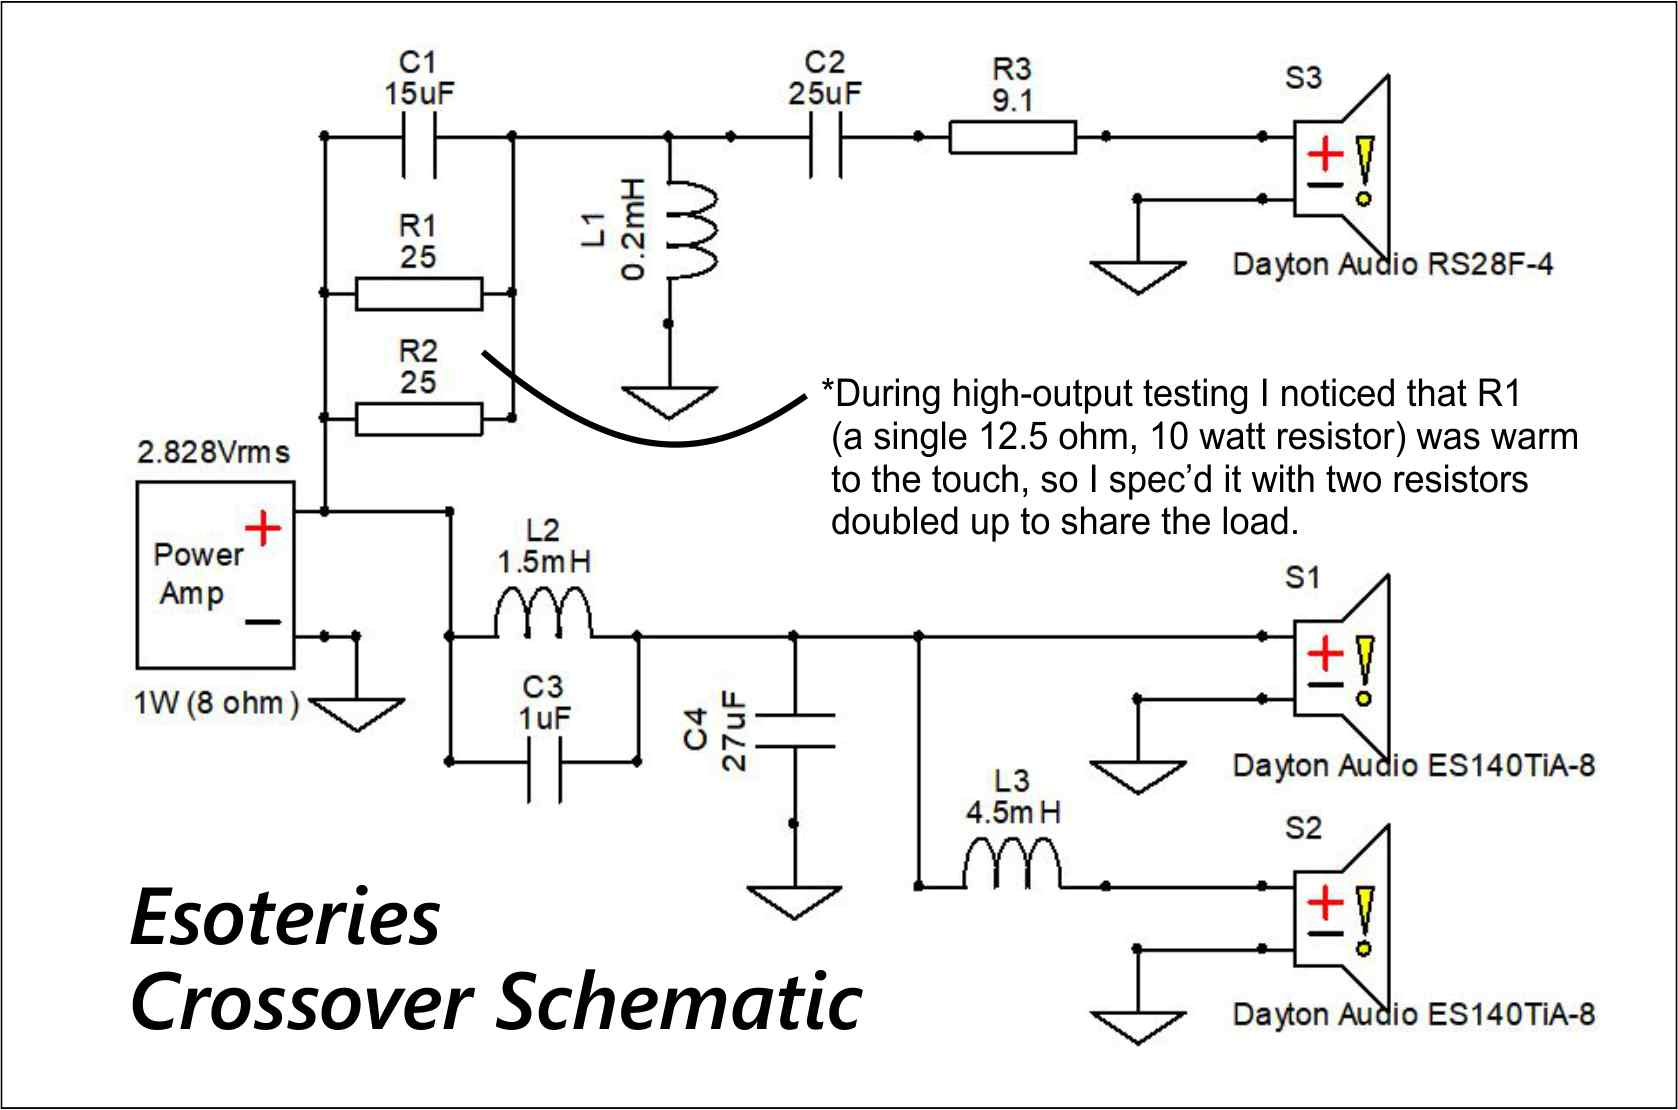 crossover schematic Parts Express Project Gallery